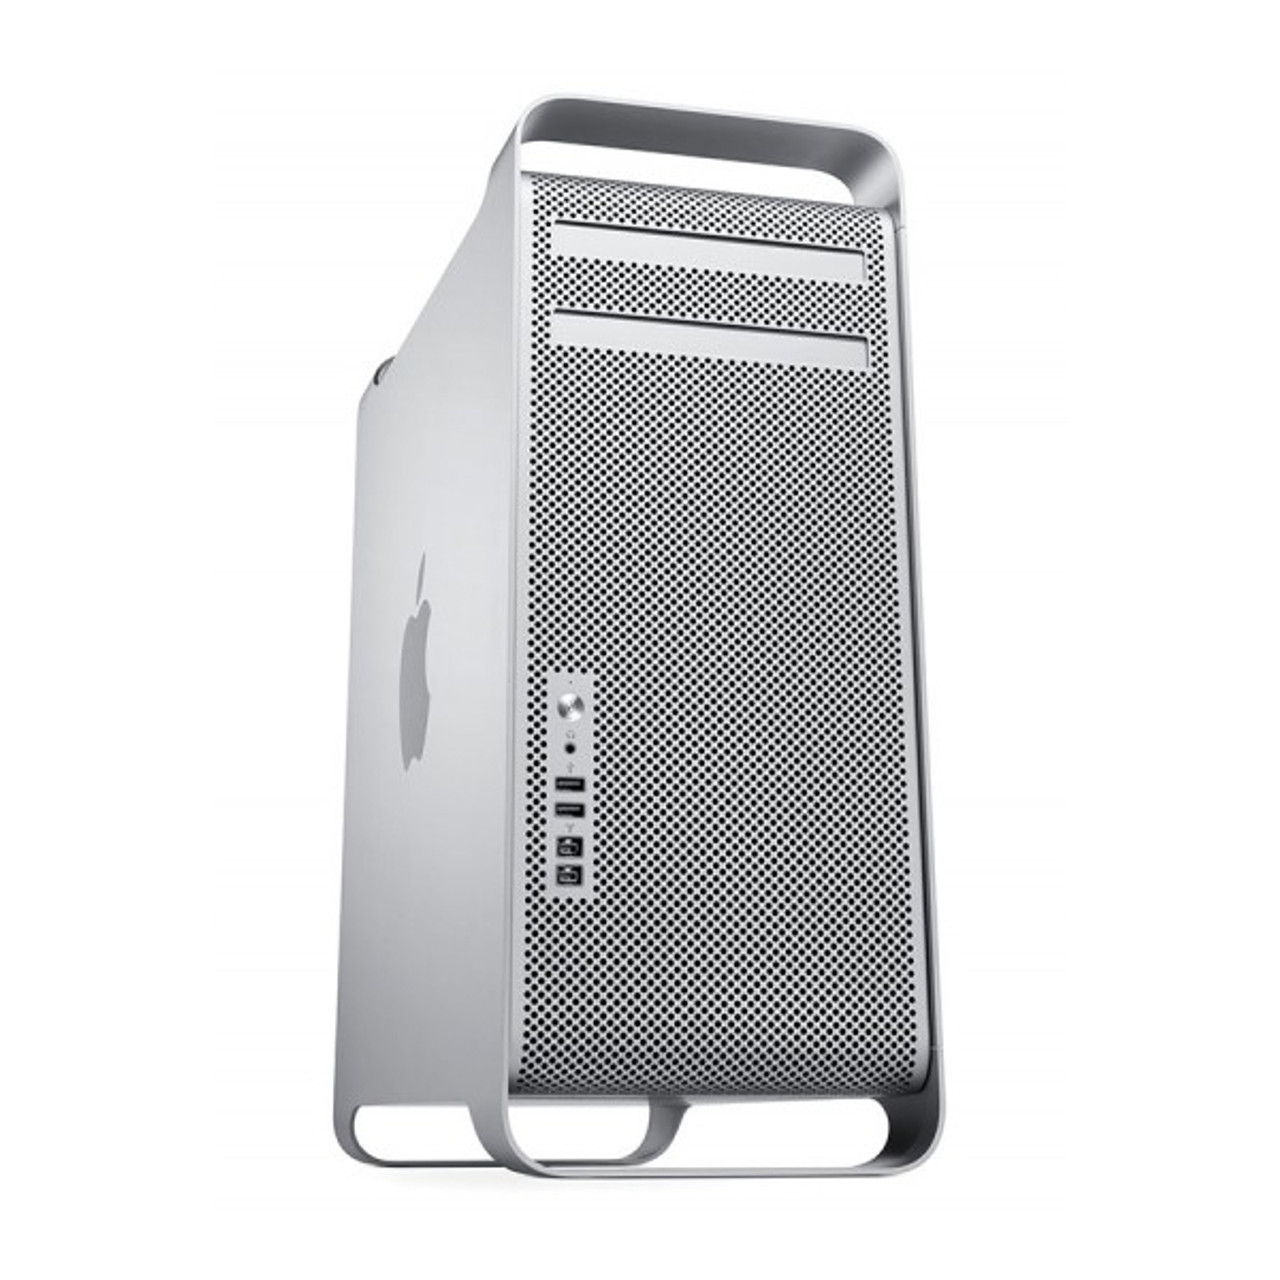 mac pro 2.8ghz 8-core intel xeon